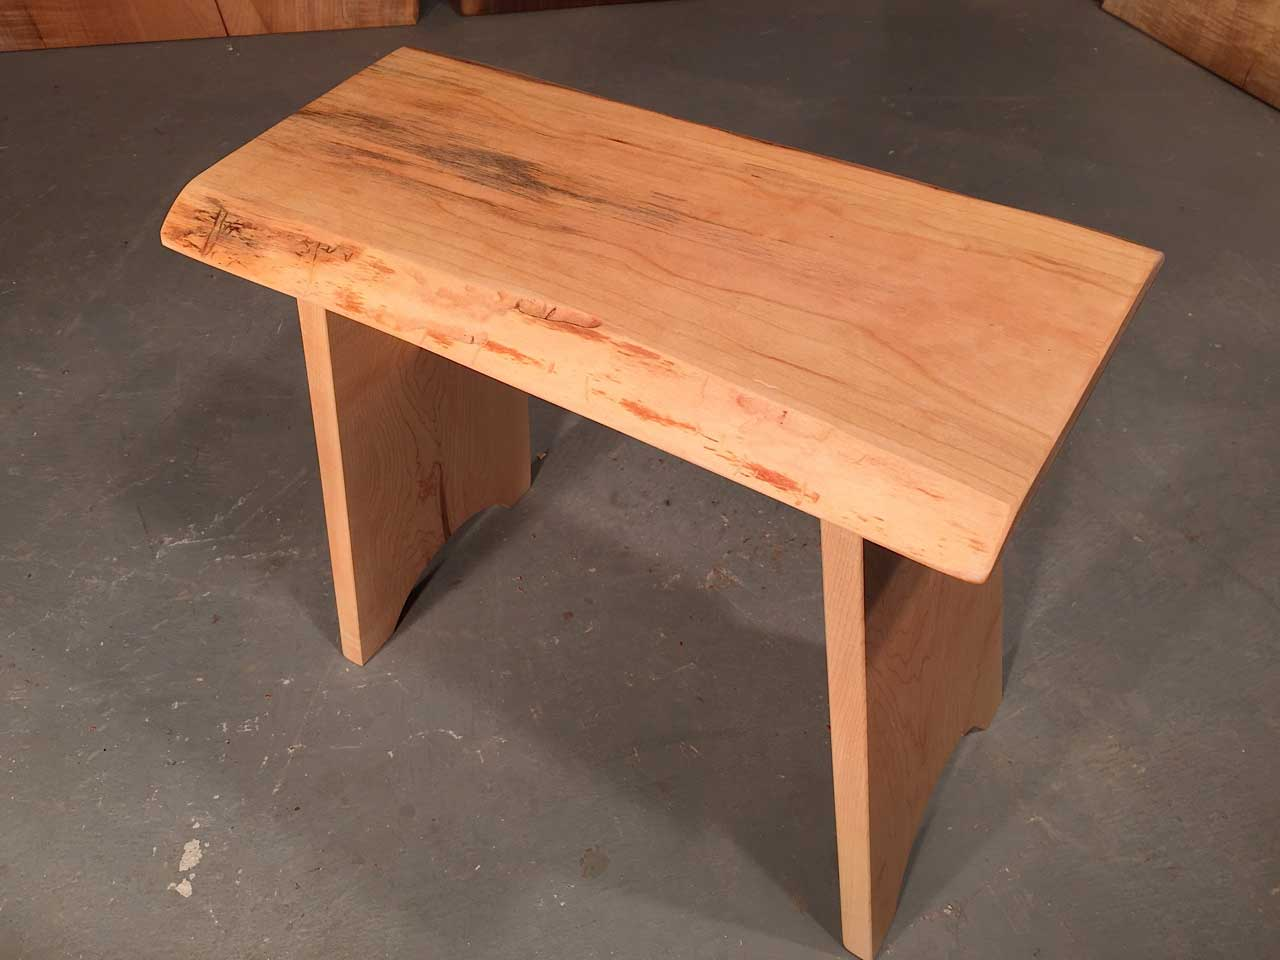 Cherry Live Edge Top With Solid Maple Legs